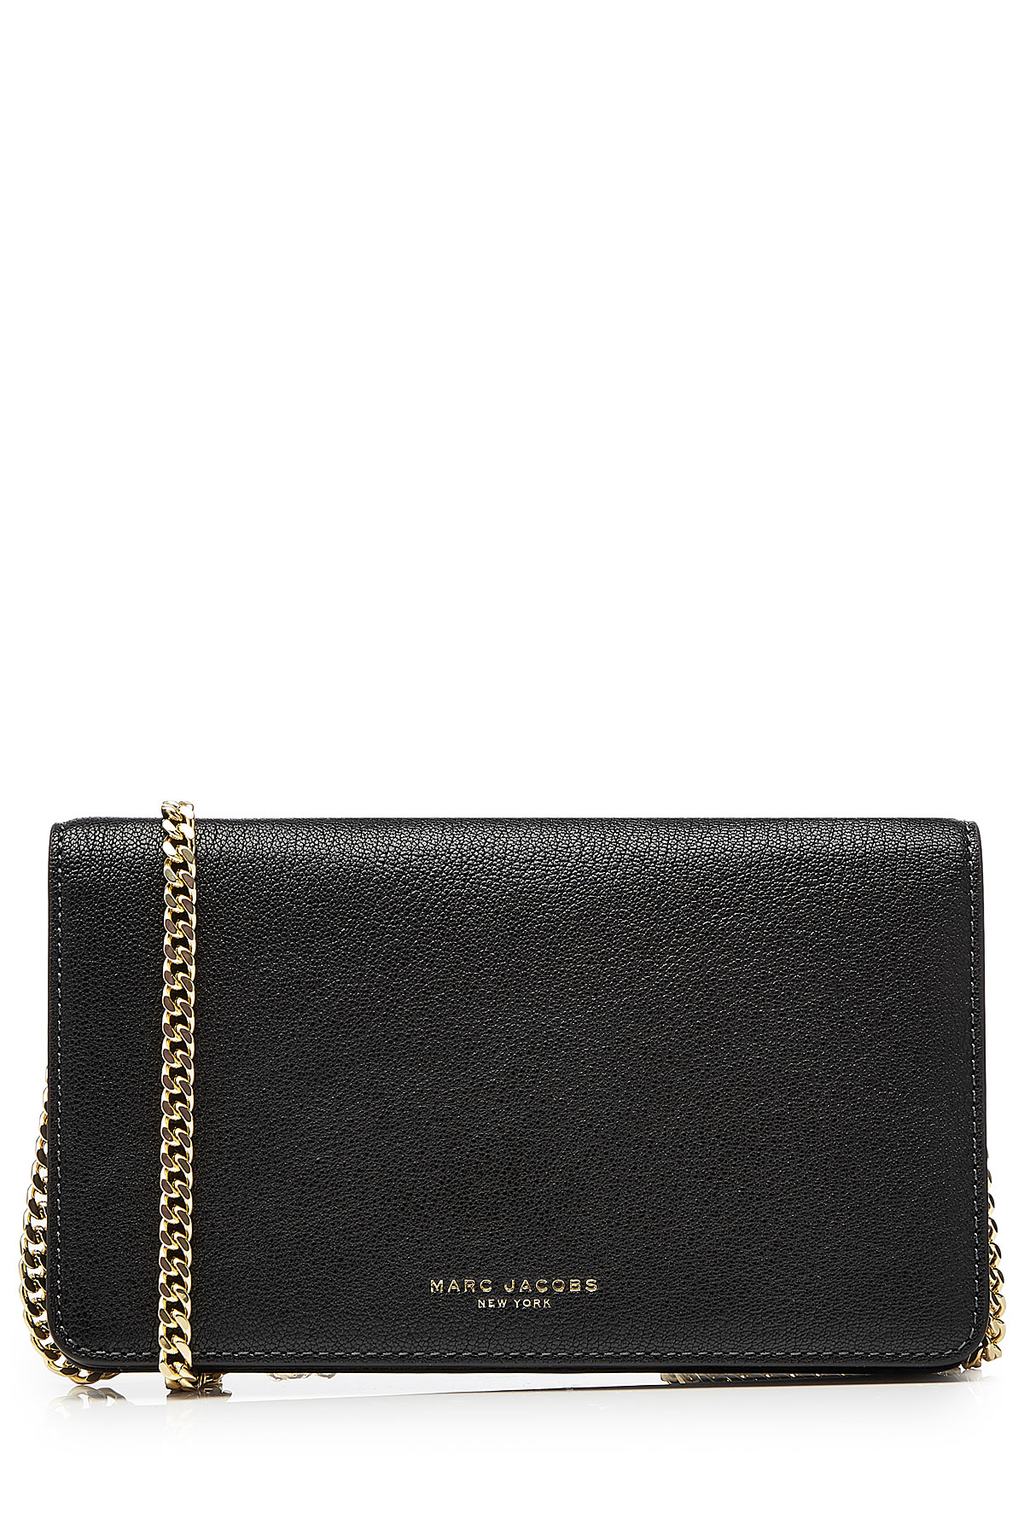 Leather Perry Wallet On Chain Black - predominant colour: black; occasions: casual, creative work; type of pattern: standard; style: shoulder; length: shoulder (tucks under arm); size: standard; material: leather; pattern: plain; finish: plain; season: s/s 2016; wardrobe: investment